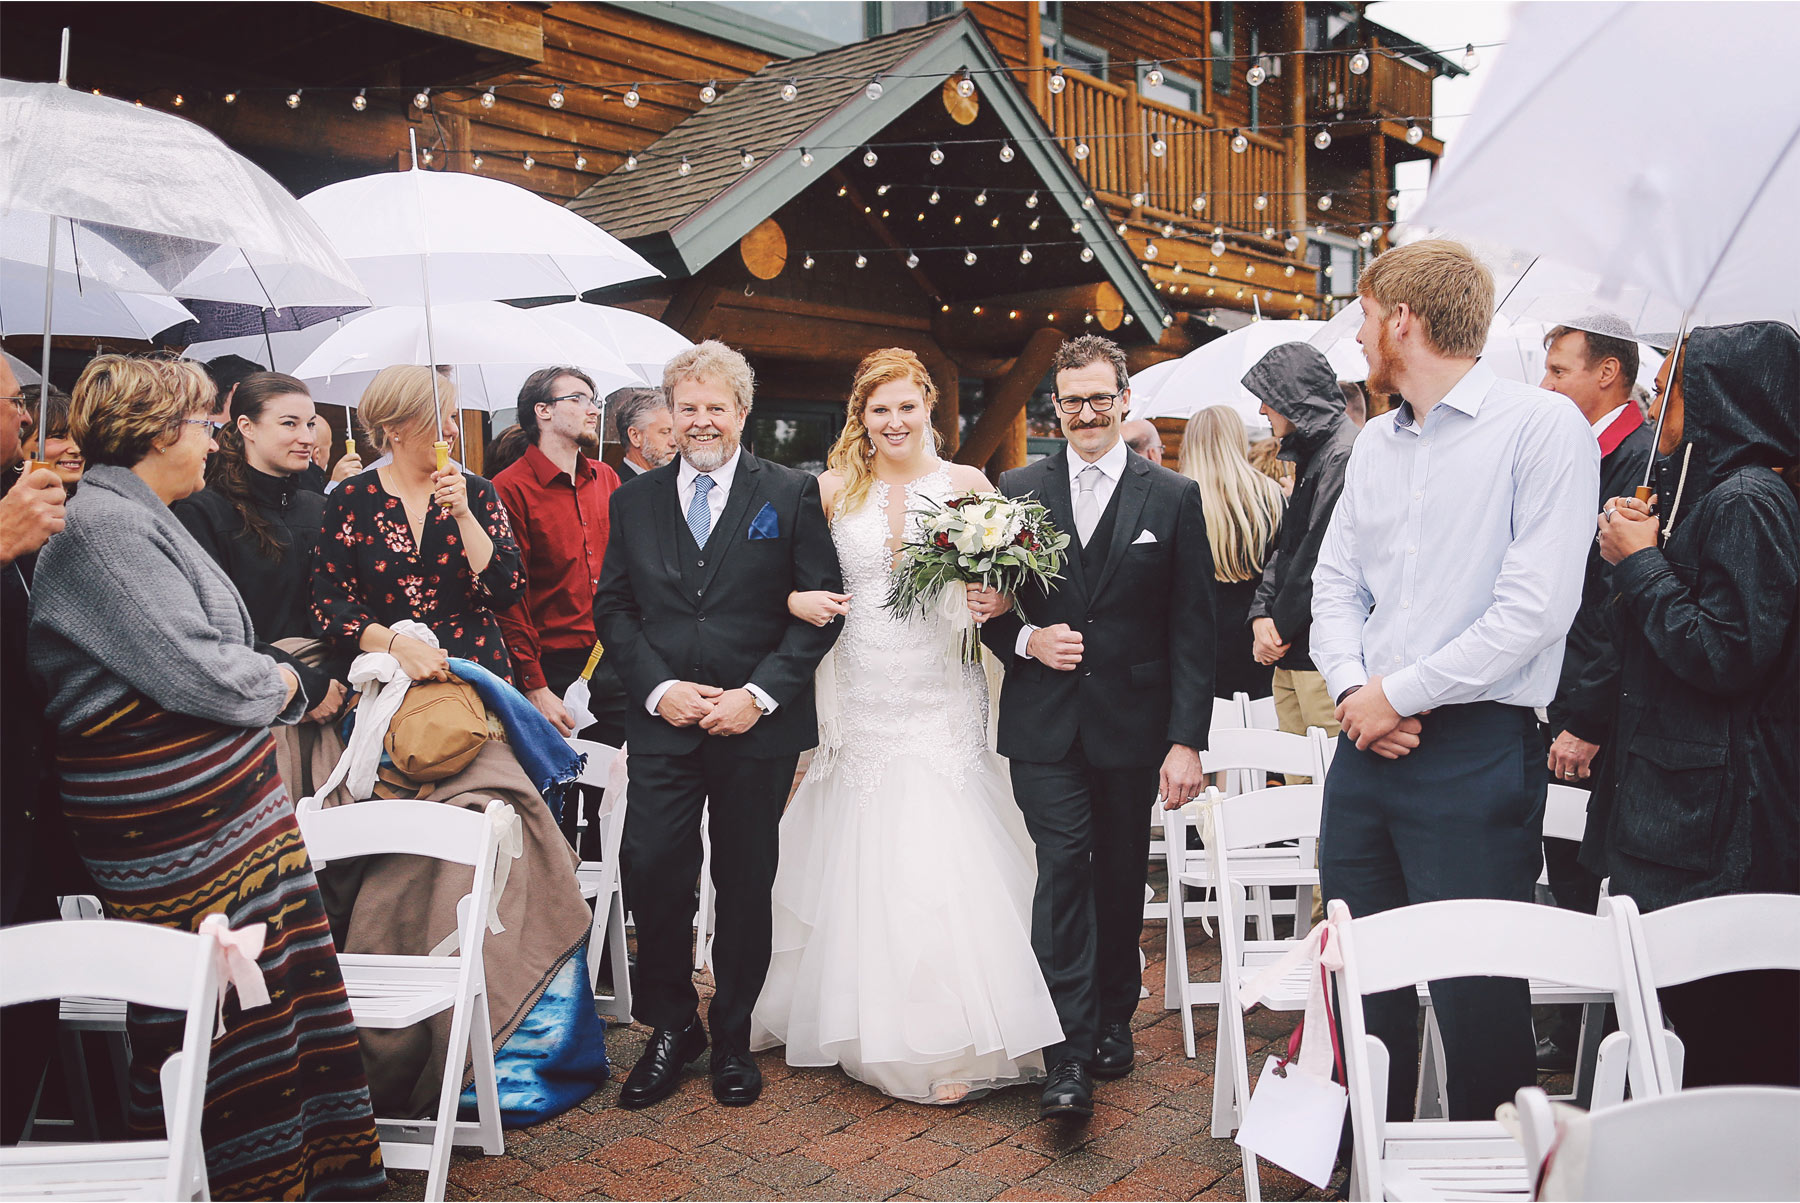 14-Minnesota-Wedding-by-Andrew-Vick-Photography-Grand-Superior-Lodge-Duluth-Two-Harbors-Outdoor-Ceremony-Rain-Umbrellas-Aisle-Bride-Fathers-Veronica-and-Tyler.jpg